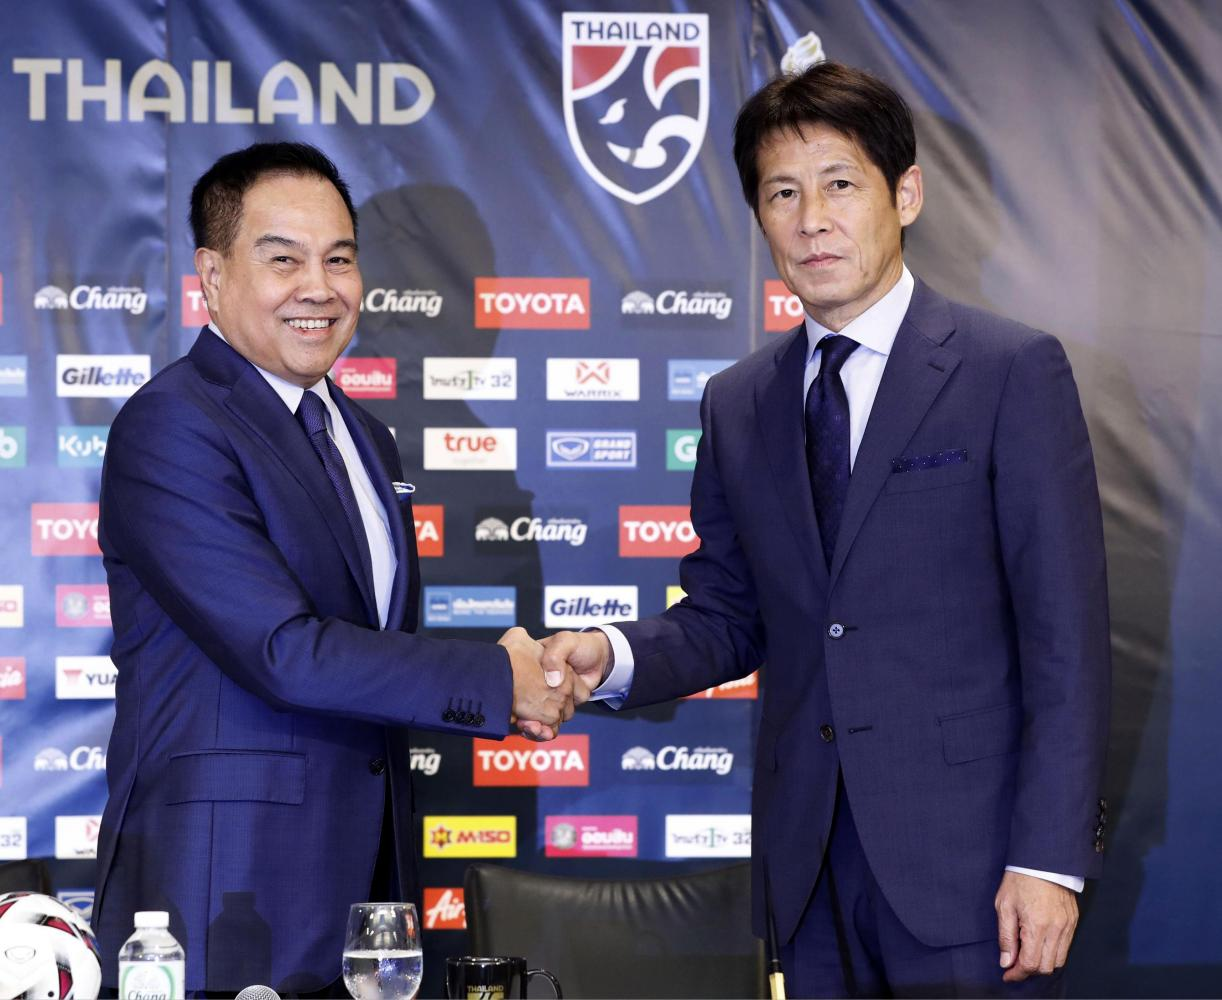 New Thailand coach Akira Nishino (right) and Thai football chief Somyot Poompunmuang shake hands during the contract signing ceremony in Tokyo on Friday. (AP photo)